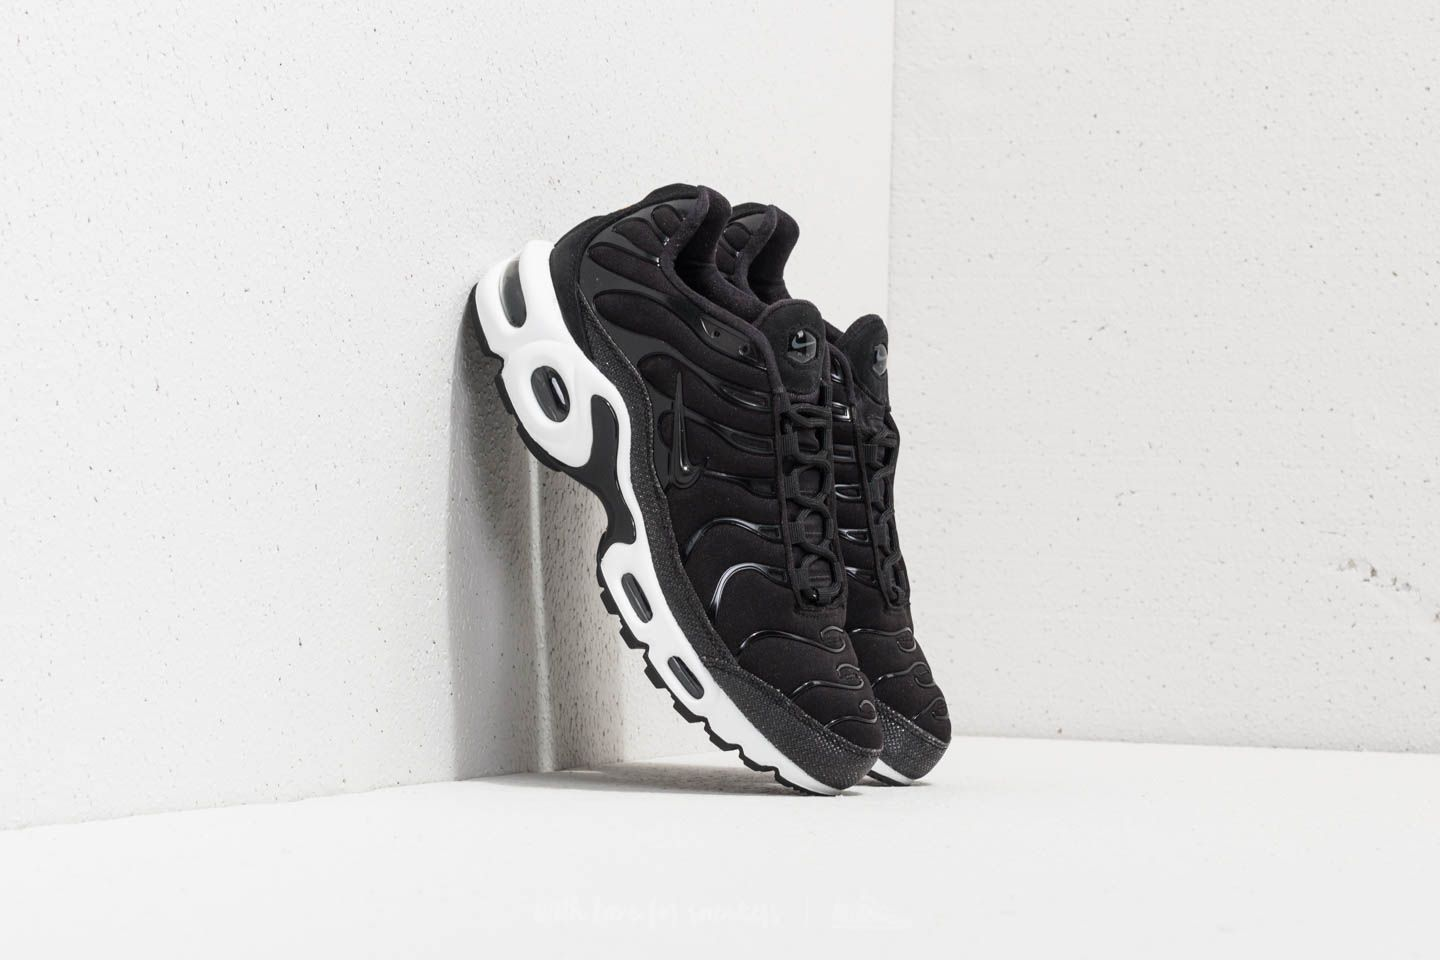 c28851acbfa3 Nike Wmns Air Max Plus Premium Black  Black-Anthracite-White ...